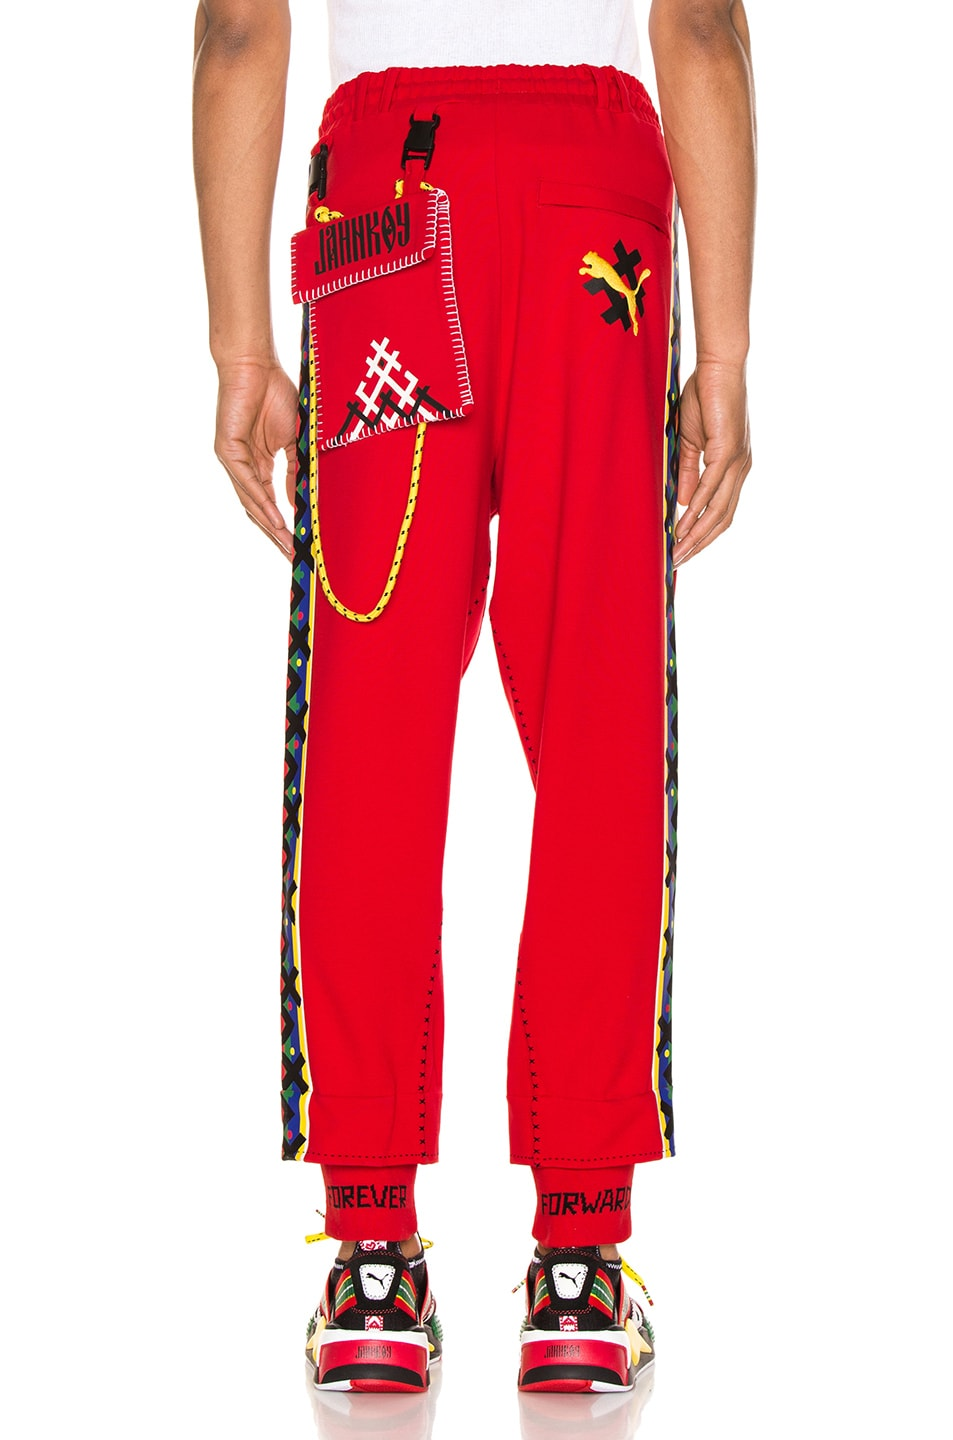 Image 5 of Puma Select x Jahnkoy Pants in High Risk Red